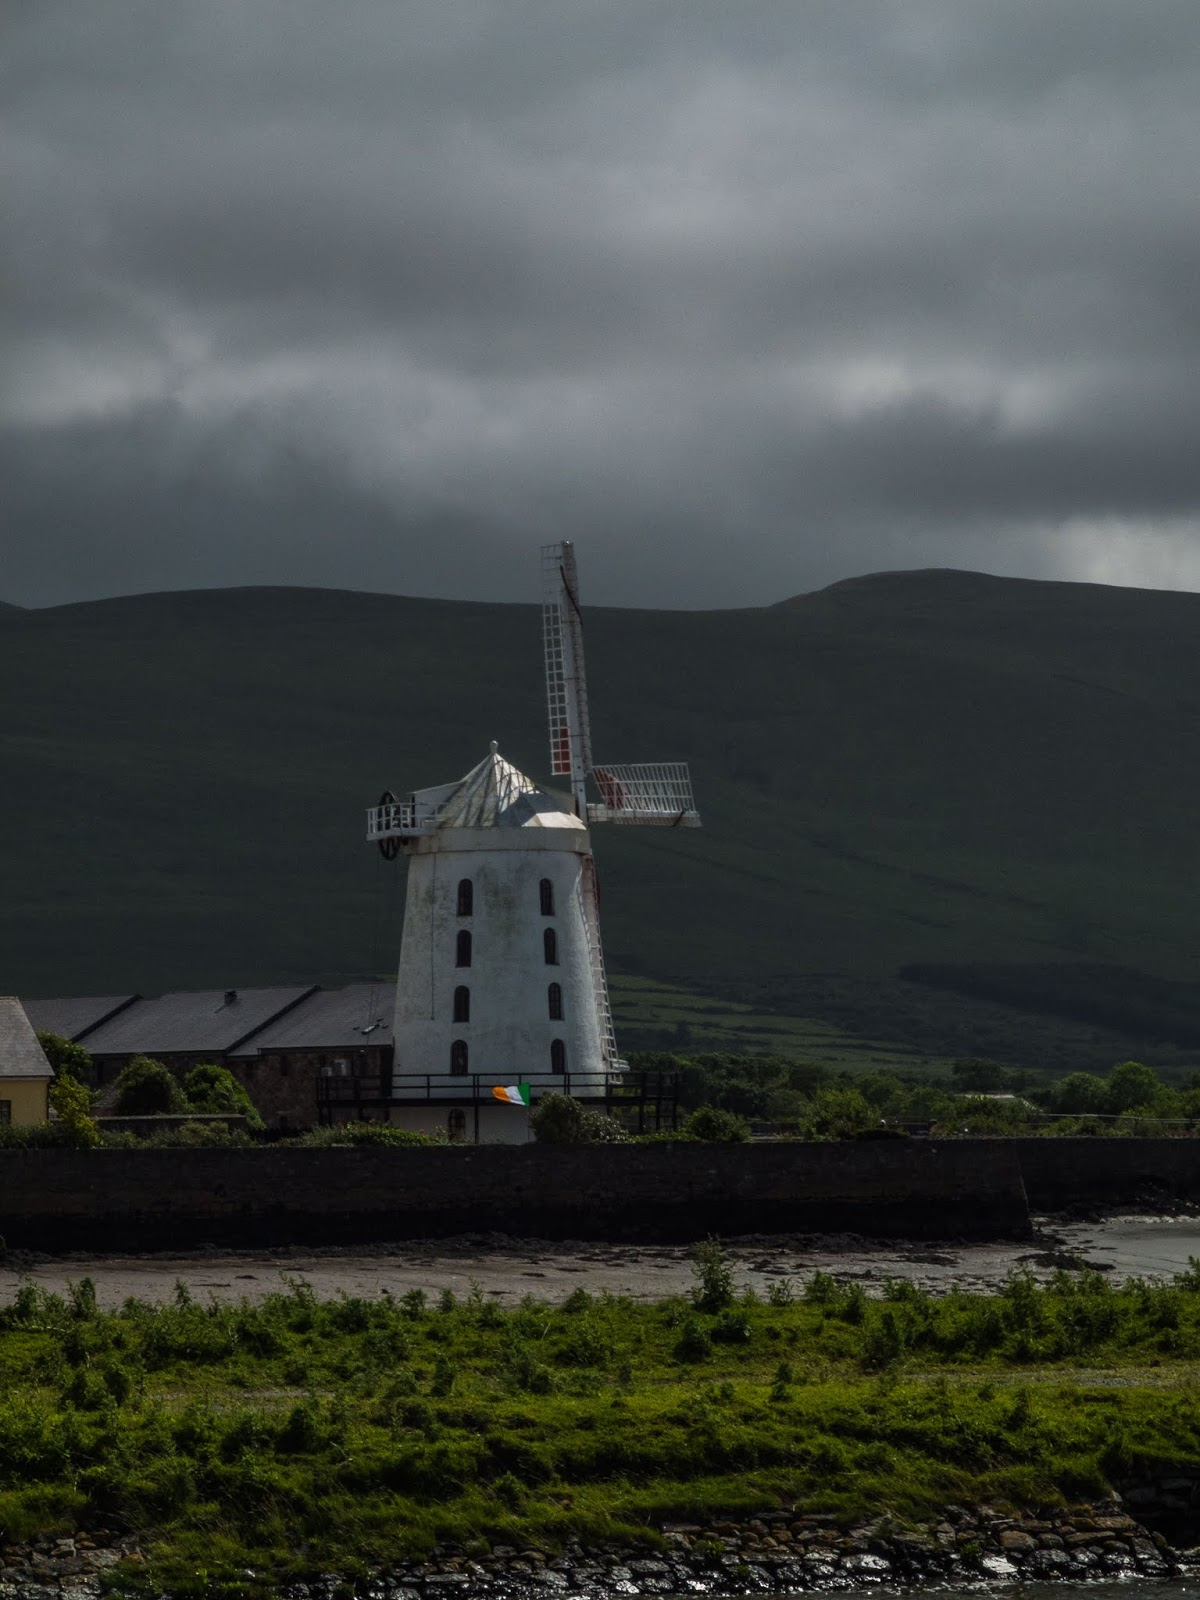 Blennerville Windmill, Tralee, County Kerry on a cloudy day.